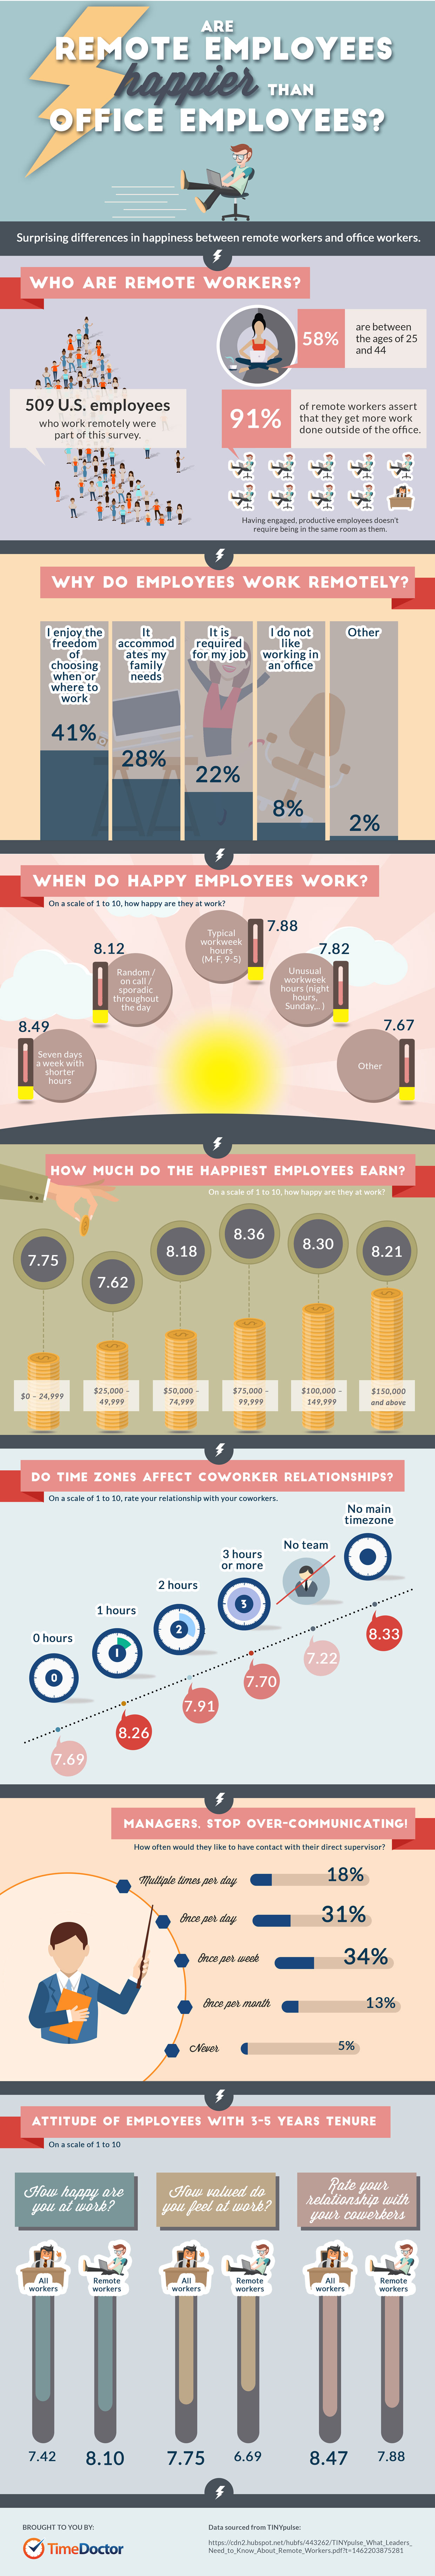 Are Remote Workers Happier Than Office Employees? (Infographic)